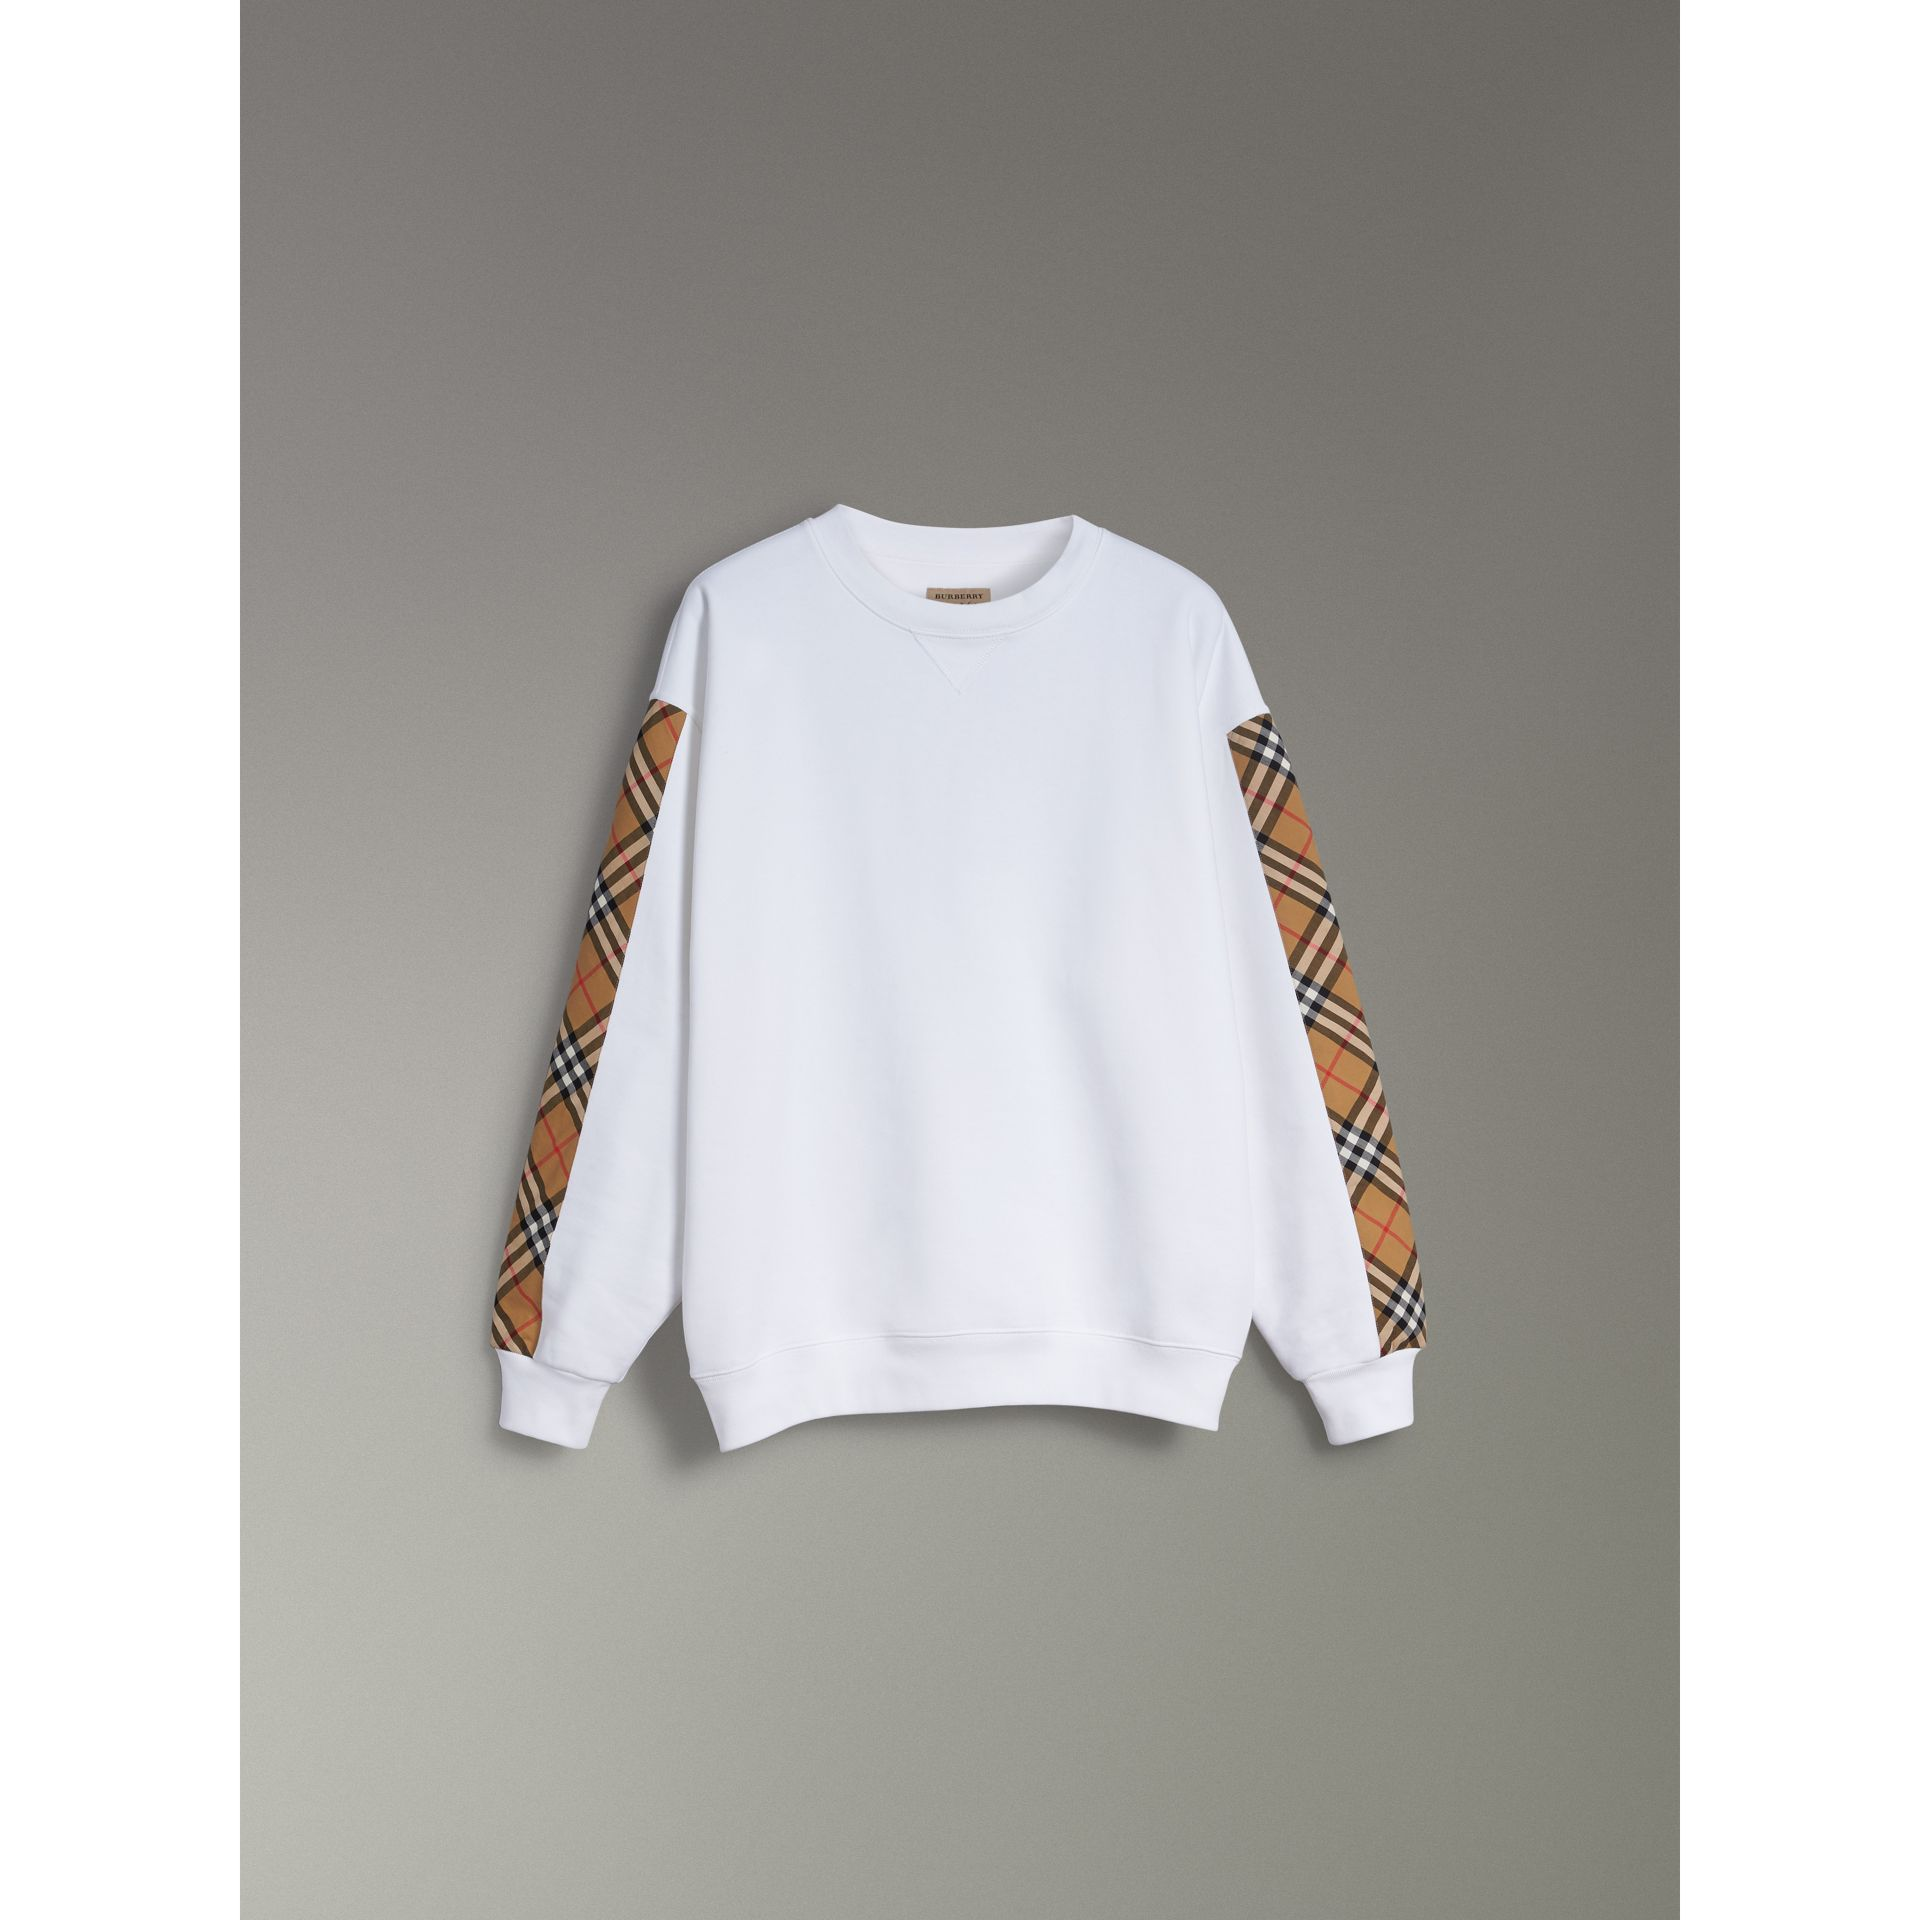 Vintage Check Detail Cotton Blend Sweatshirt in White - Women | Burberry - gallery image 3